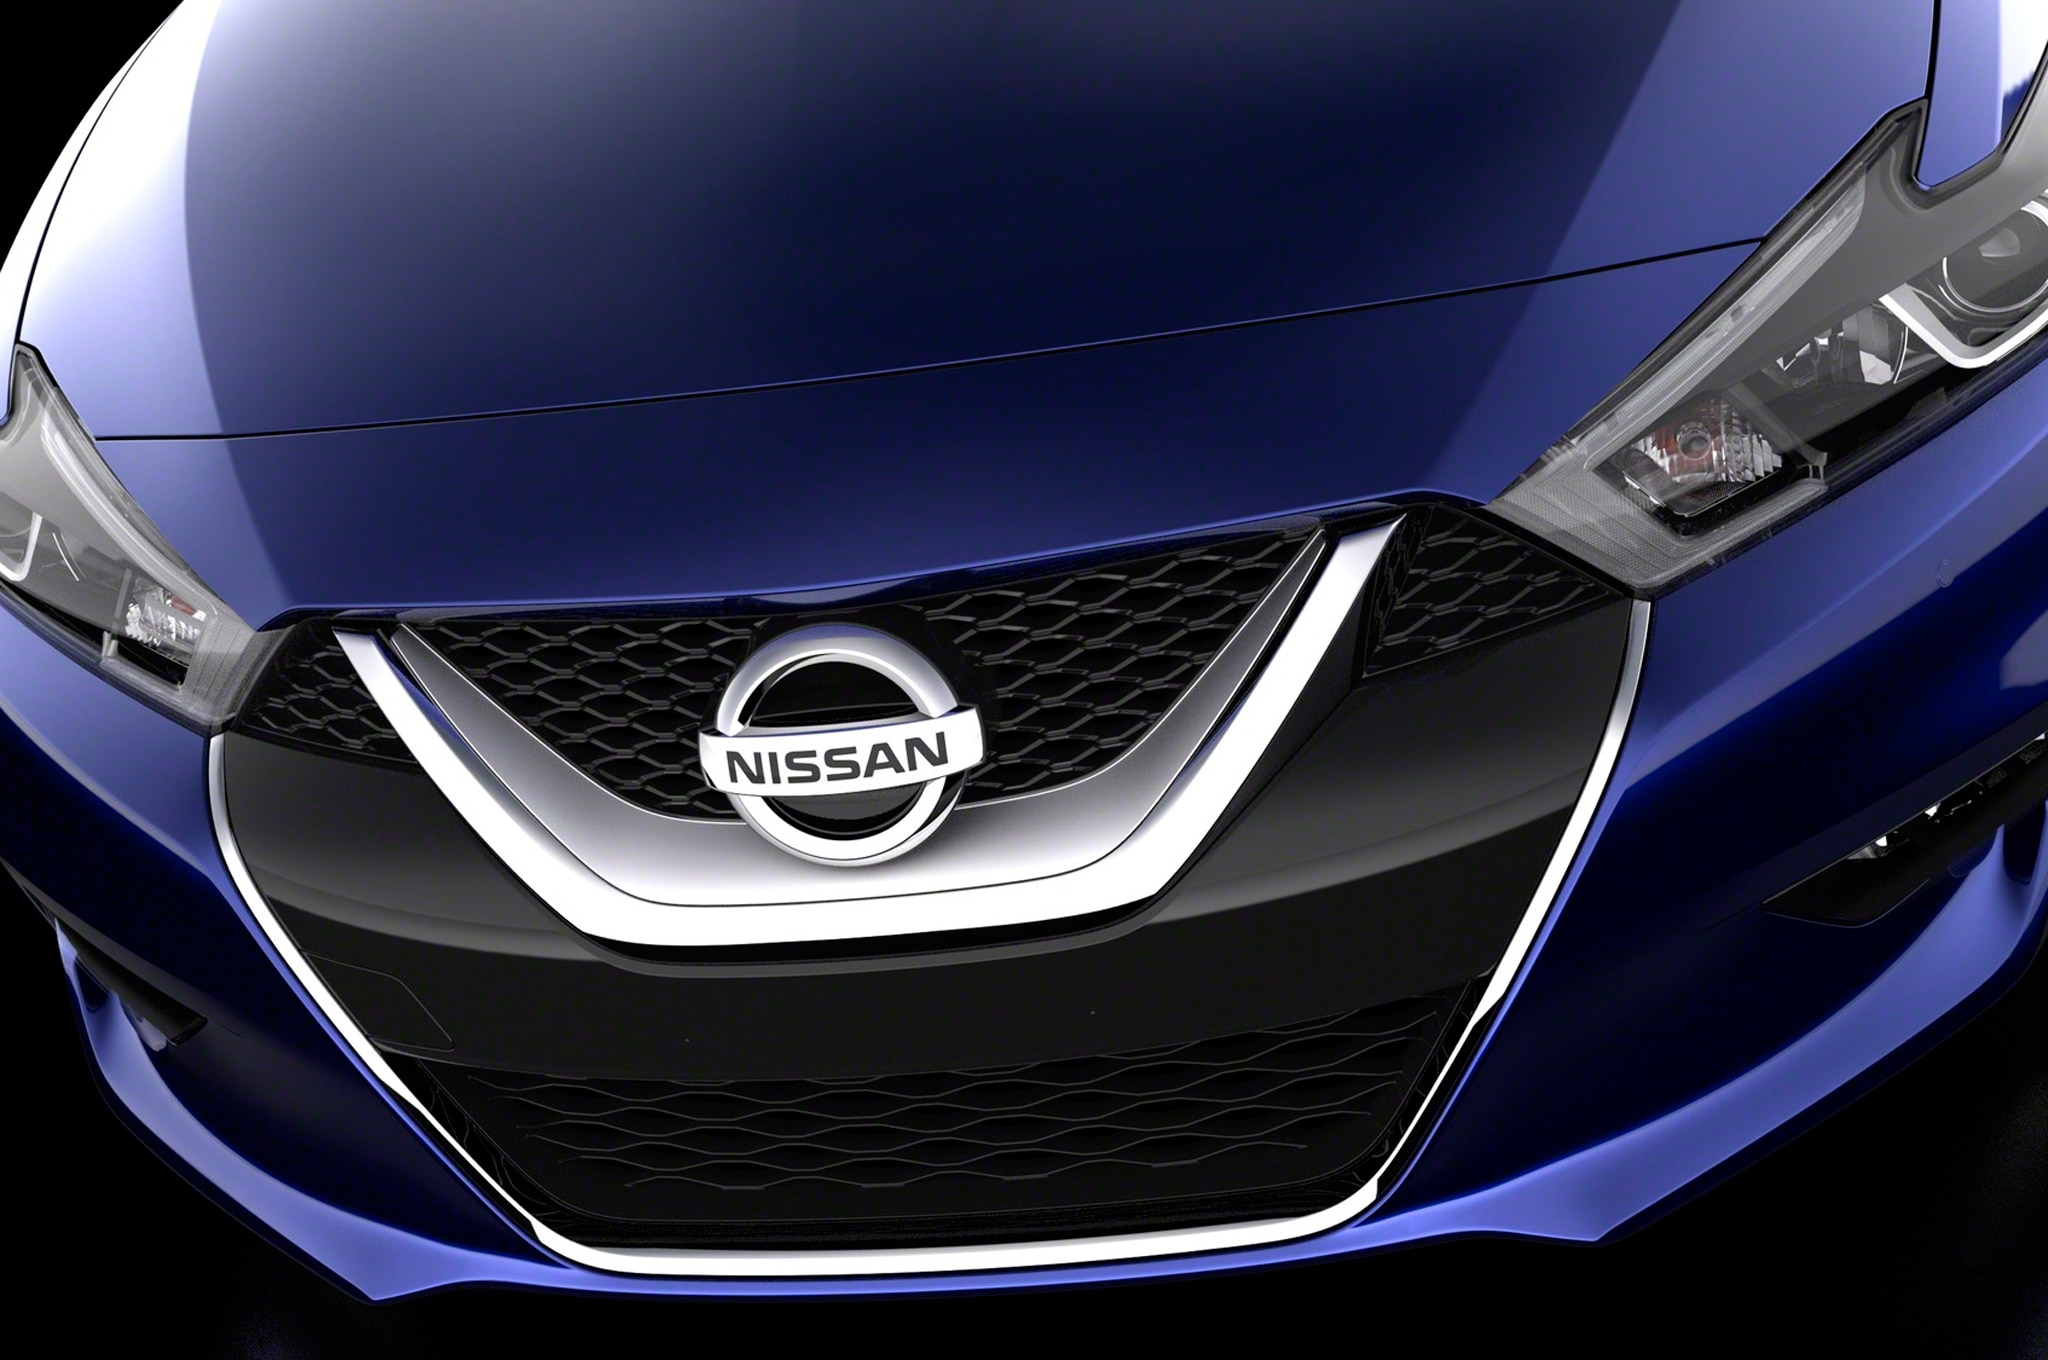 5 Interesting Facts about the 2016 Nissan Maxima